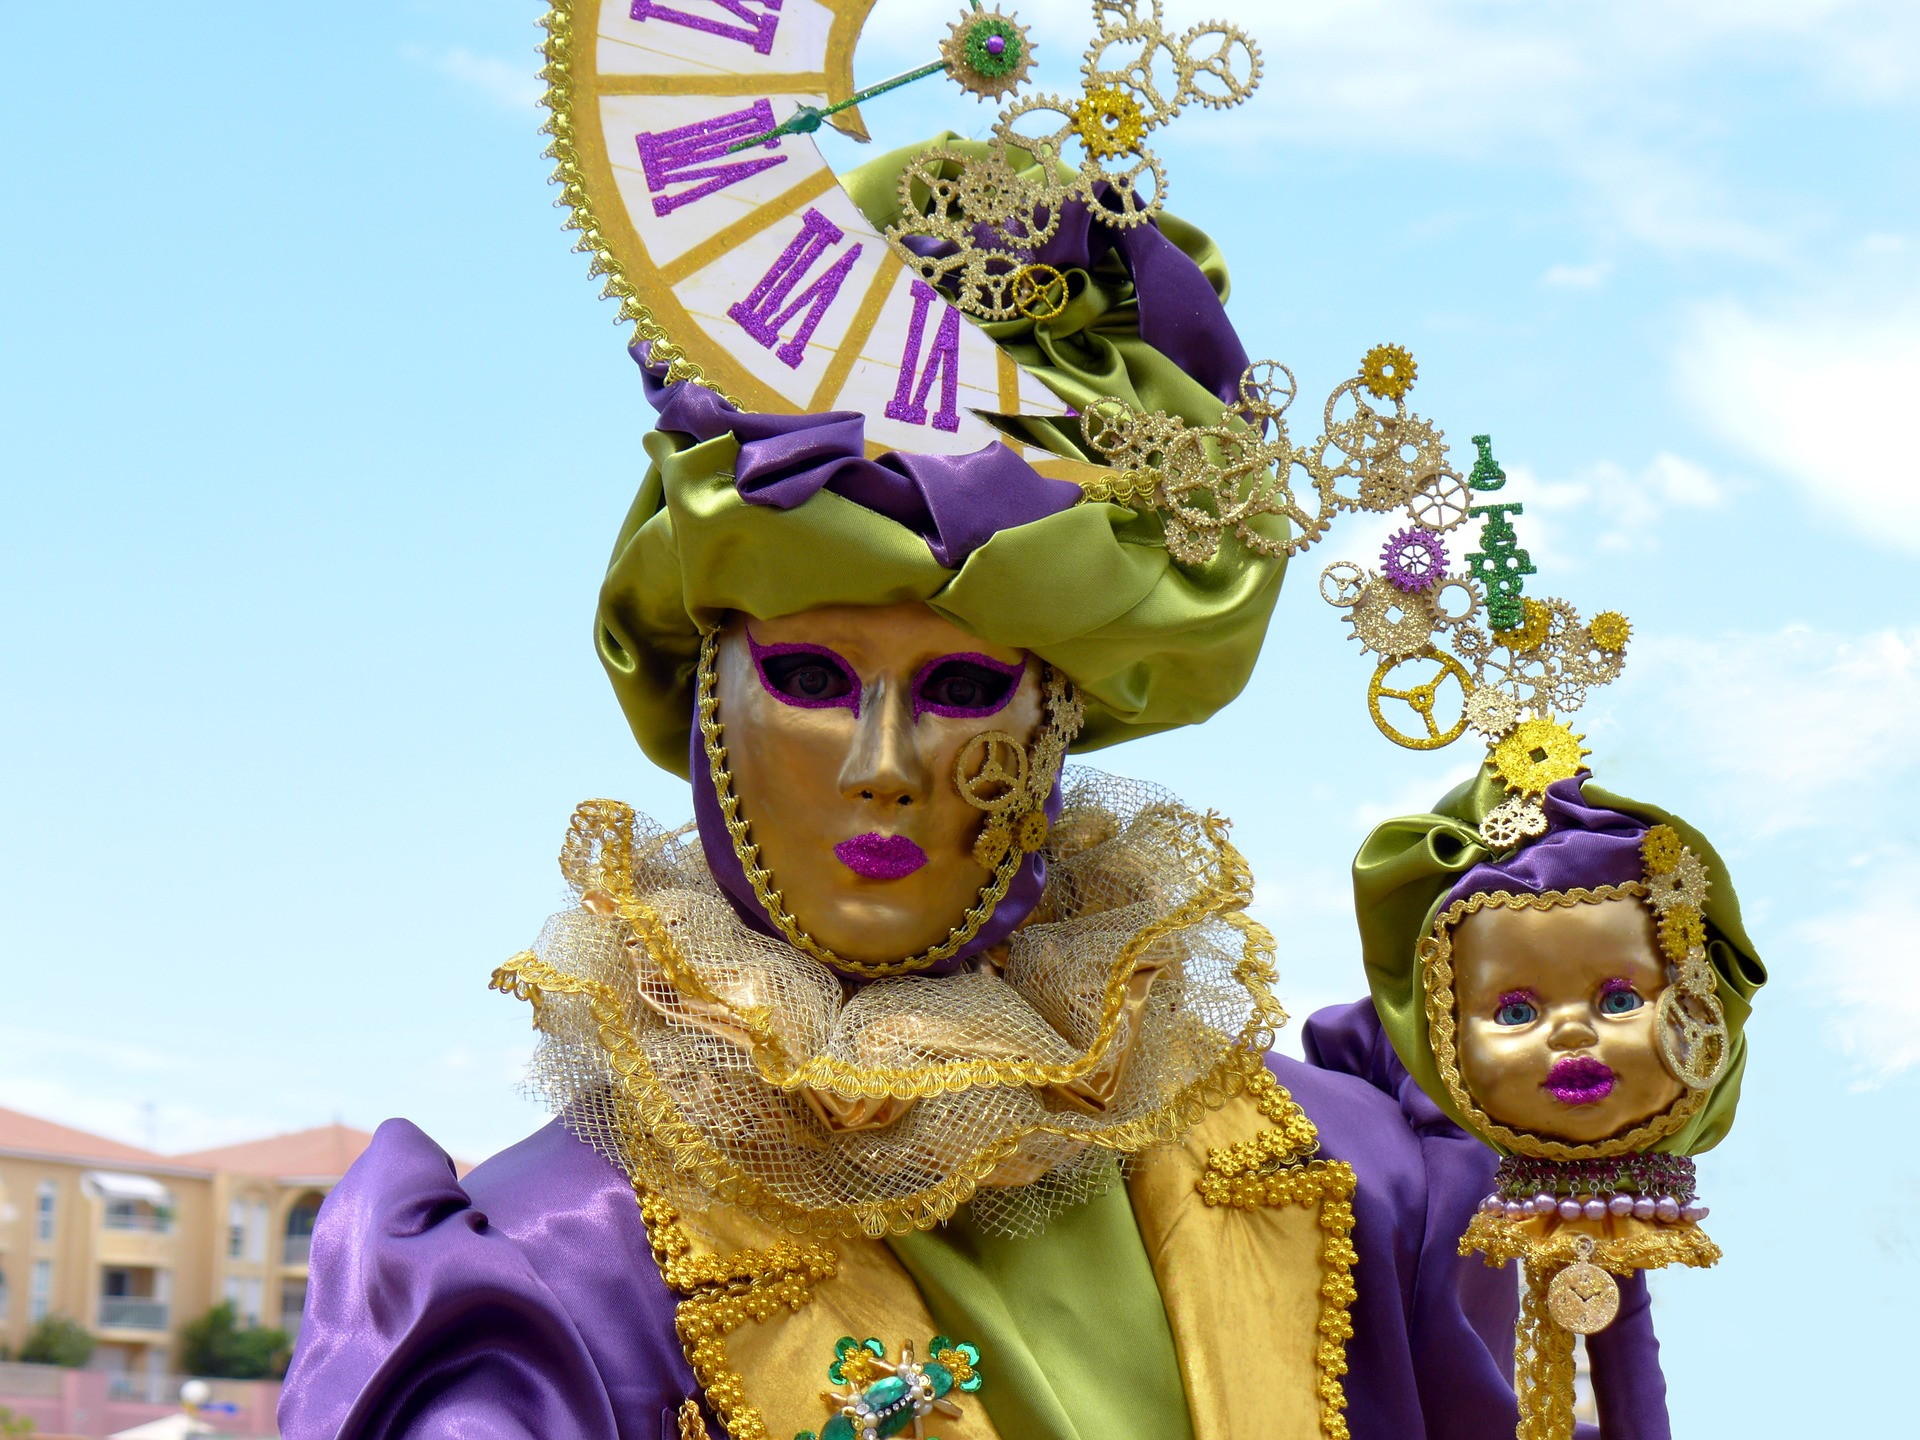 what is carnevale in italy all about